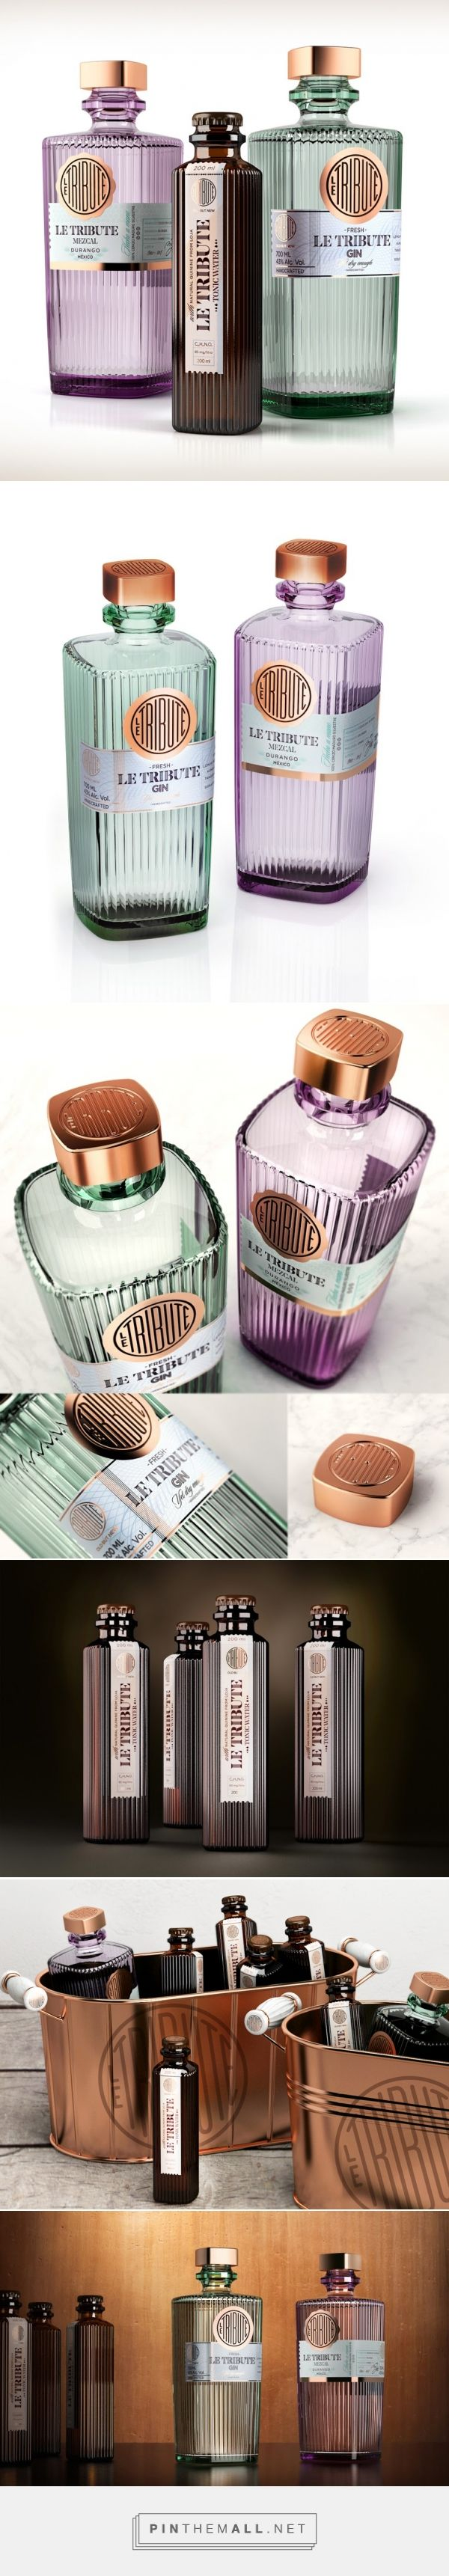 LE TRIBUTE - Gin, Mezcal, Tonic water packaging design by SeriesNemo (Spain) avantgarde contemporary - http://www.packagingoftheworld.com/2016/05/le-tribute.html